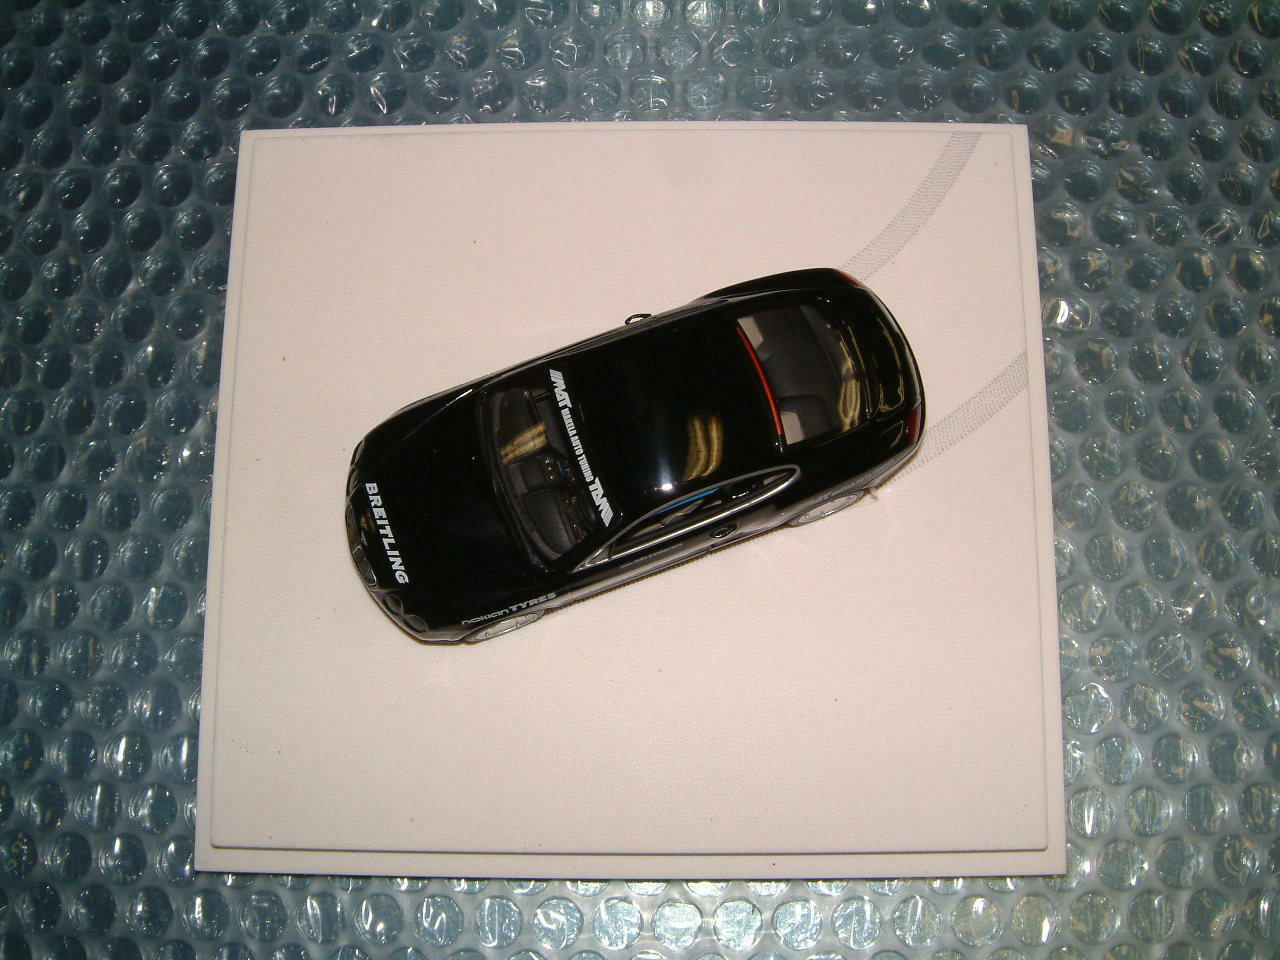 BENTLEY 1 43 SCALE LIMITED DIE CAST 2008 CONTINENTAL CONTINENTAL CONTINENTAL GT WORLD RECORD HOLDER NIB 4c3e19